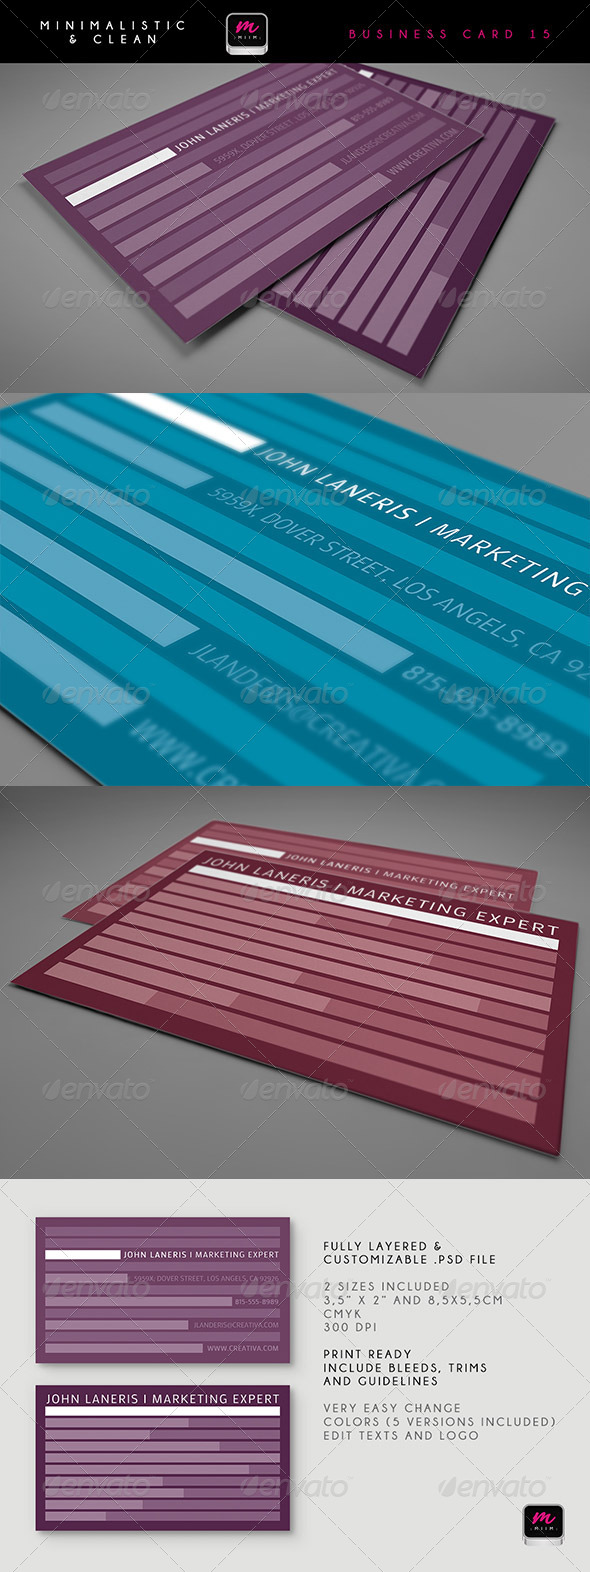 Clean Business Card Template 15 - Corporate Business Cards